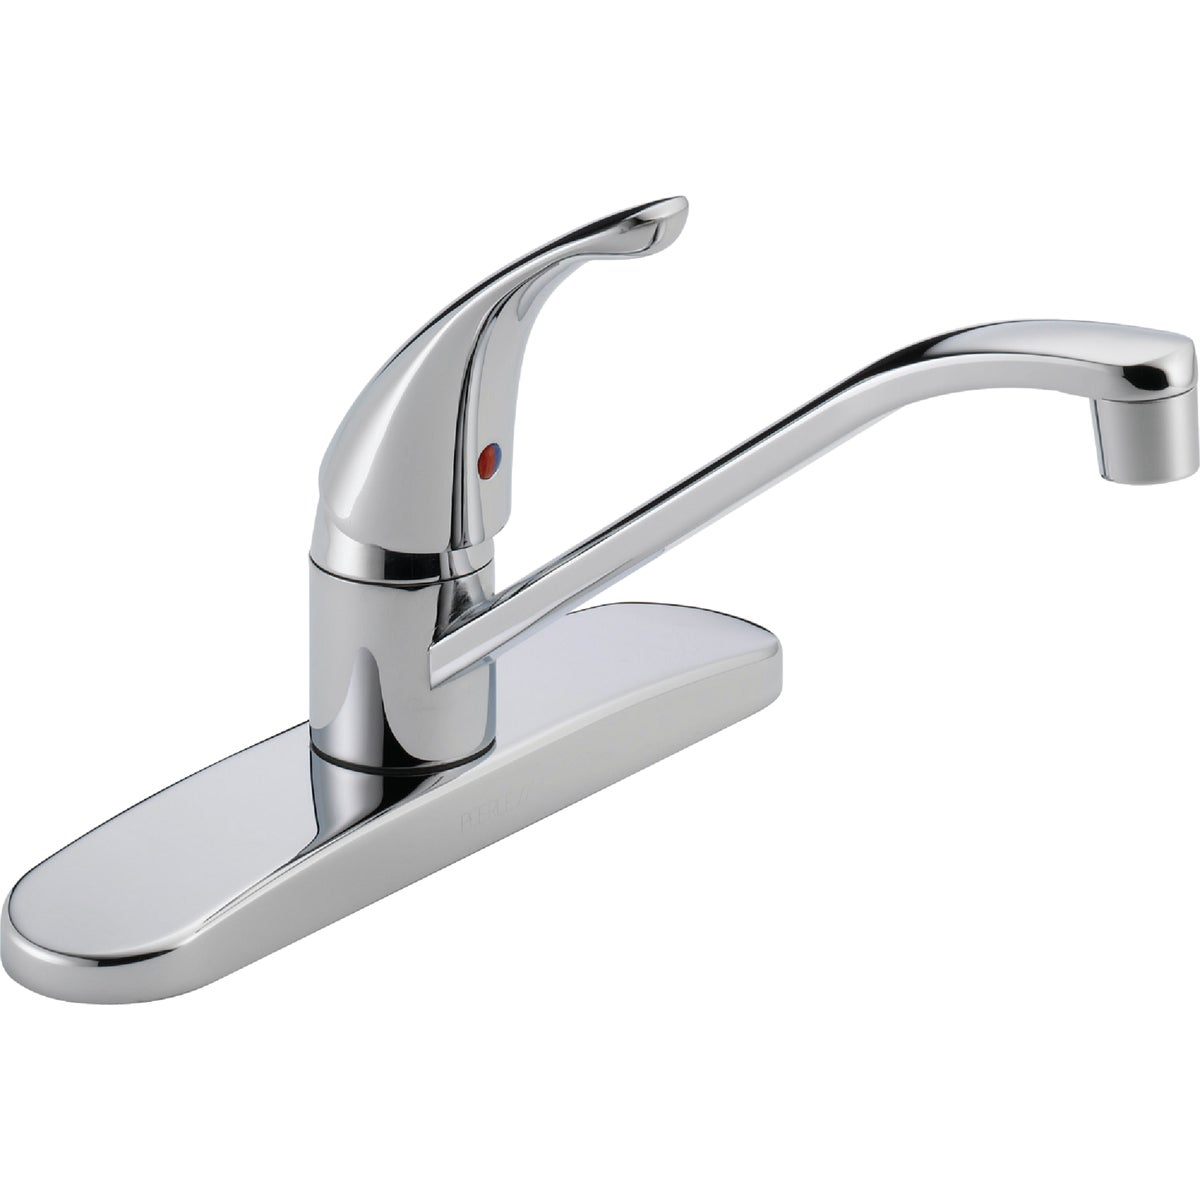 1H CHROME KITCHEN FAUCET - P110LF by Delta Faucet Co